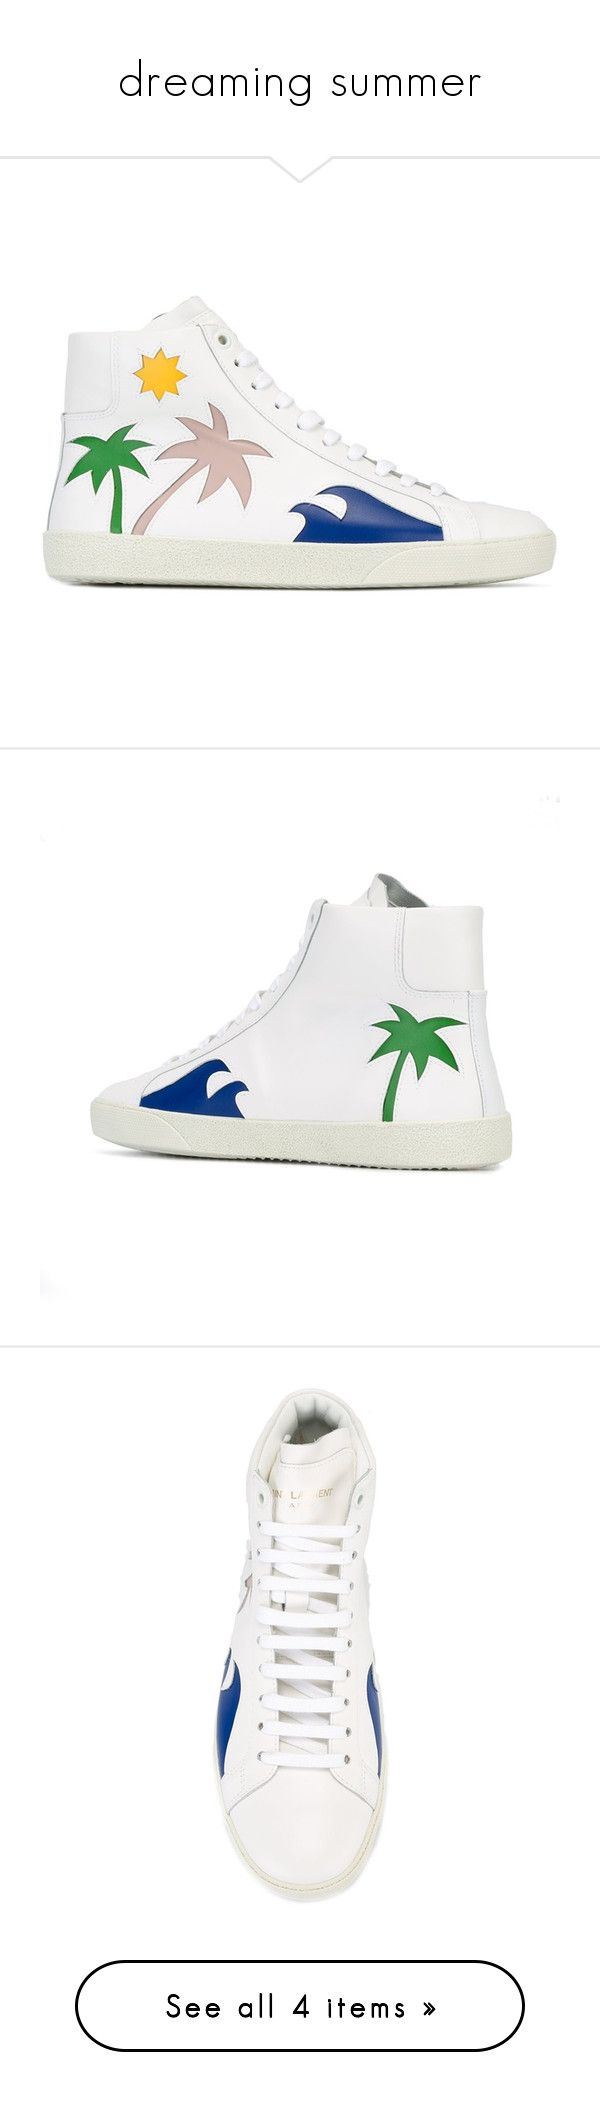 """dreaming summer"" by jofrebcn ❤ liked on Polyvore featuring shoes, sneakers, white, white trainers, white shoes, high top sneakers, white sneakers, white lace up sneakers, white hi top sneakers and white high top shoes"